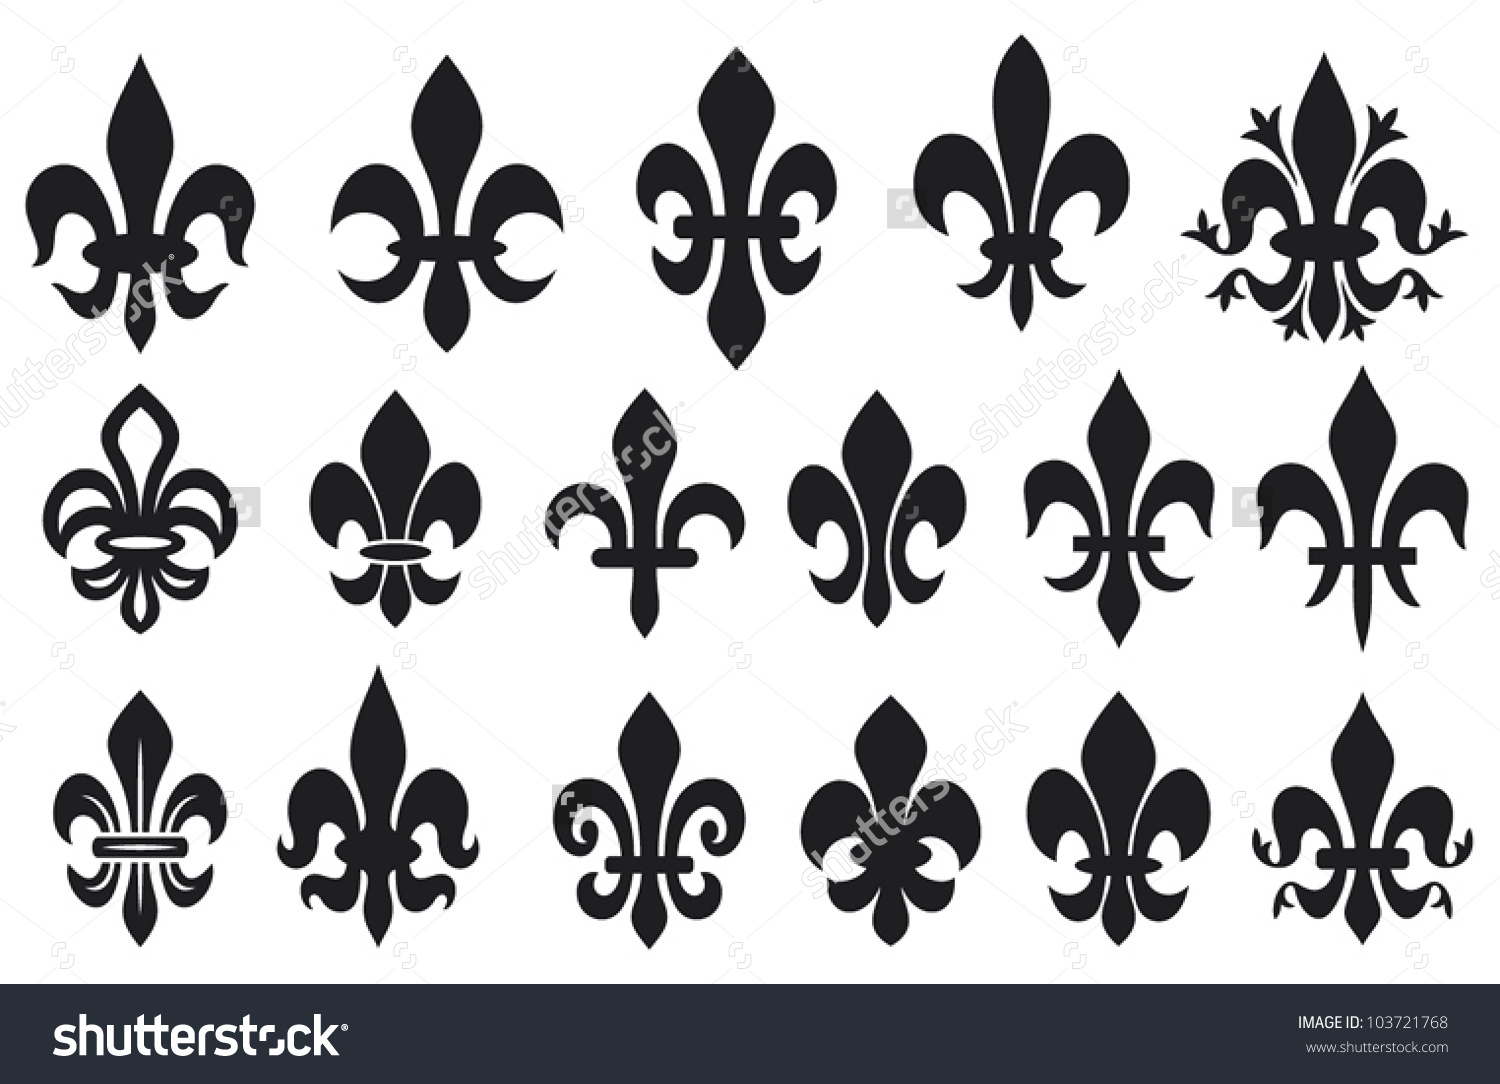 Lily Flower Collection Heraldic Symbols Stock Vector 103721768.